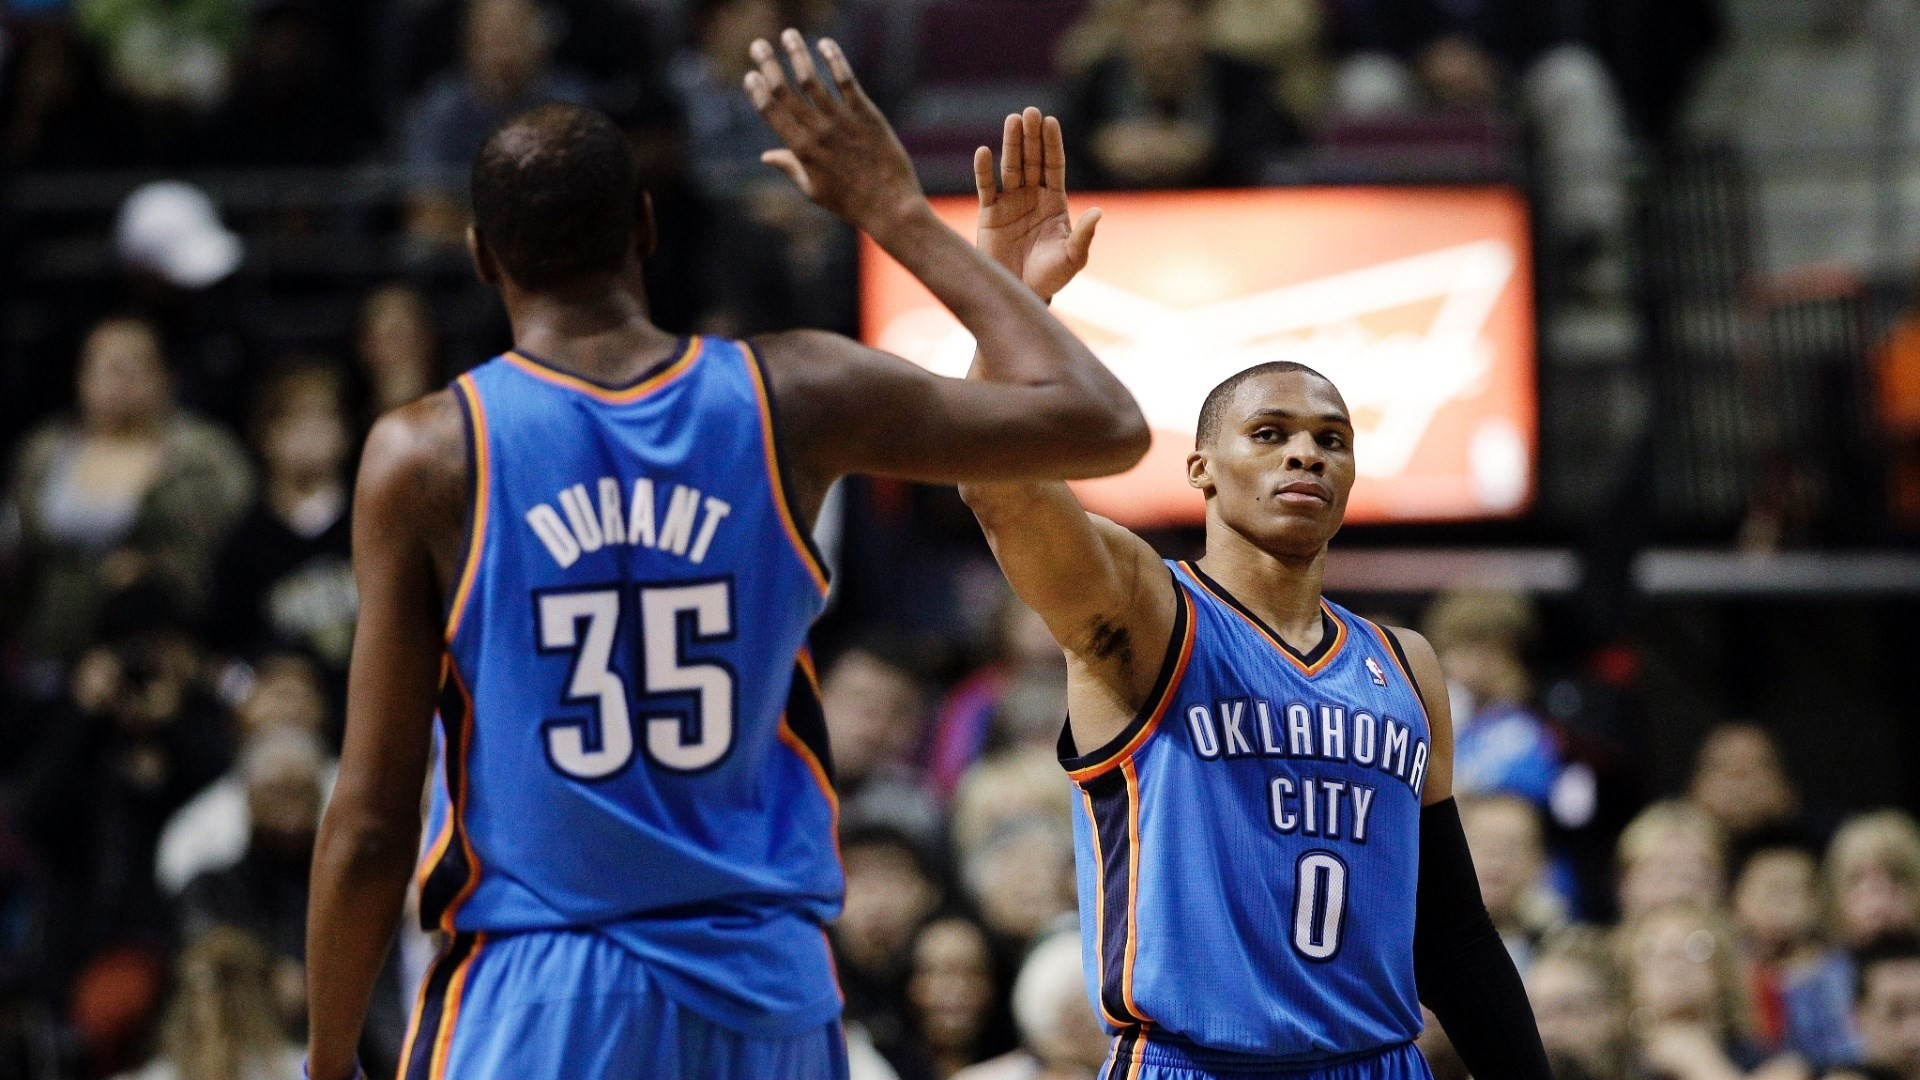 Arran Gordon – Pretty russell westbrook picture – 1920 x 1080 px